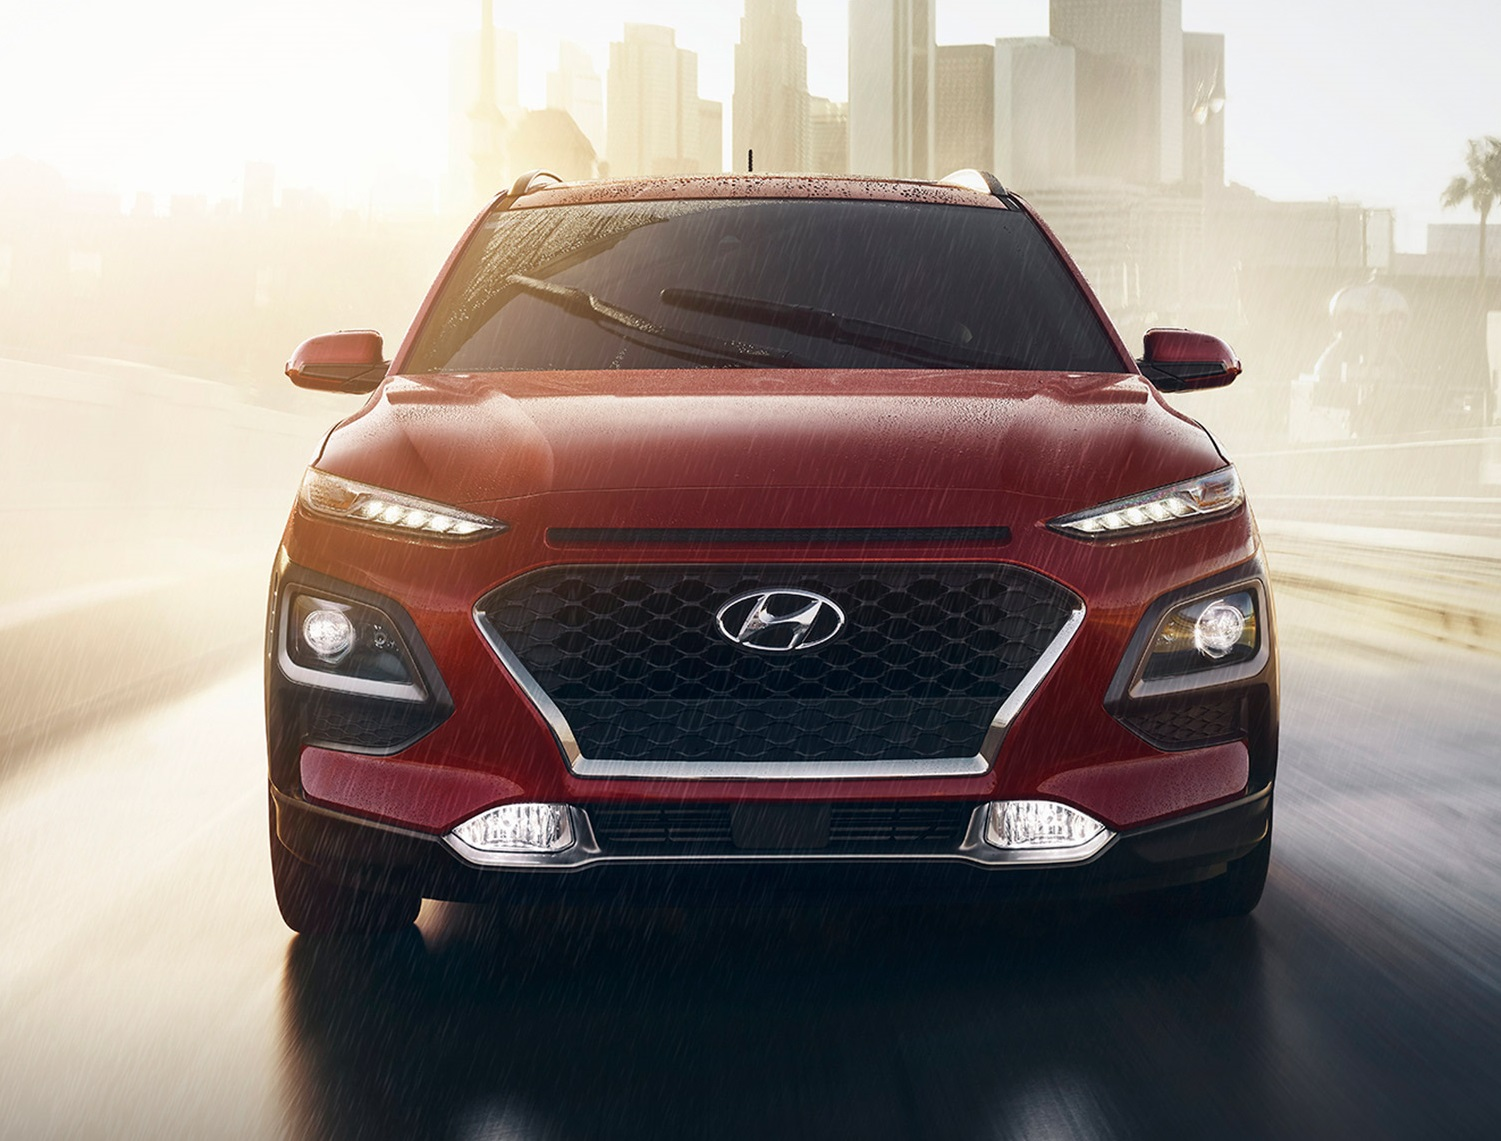 2018 Hyundai Kona l Oak Lawn Illinois - Overview